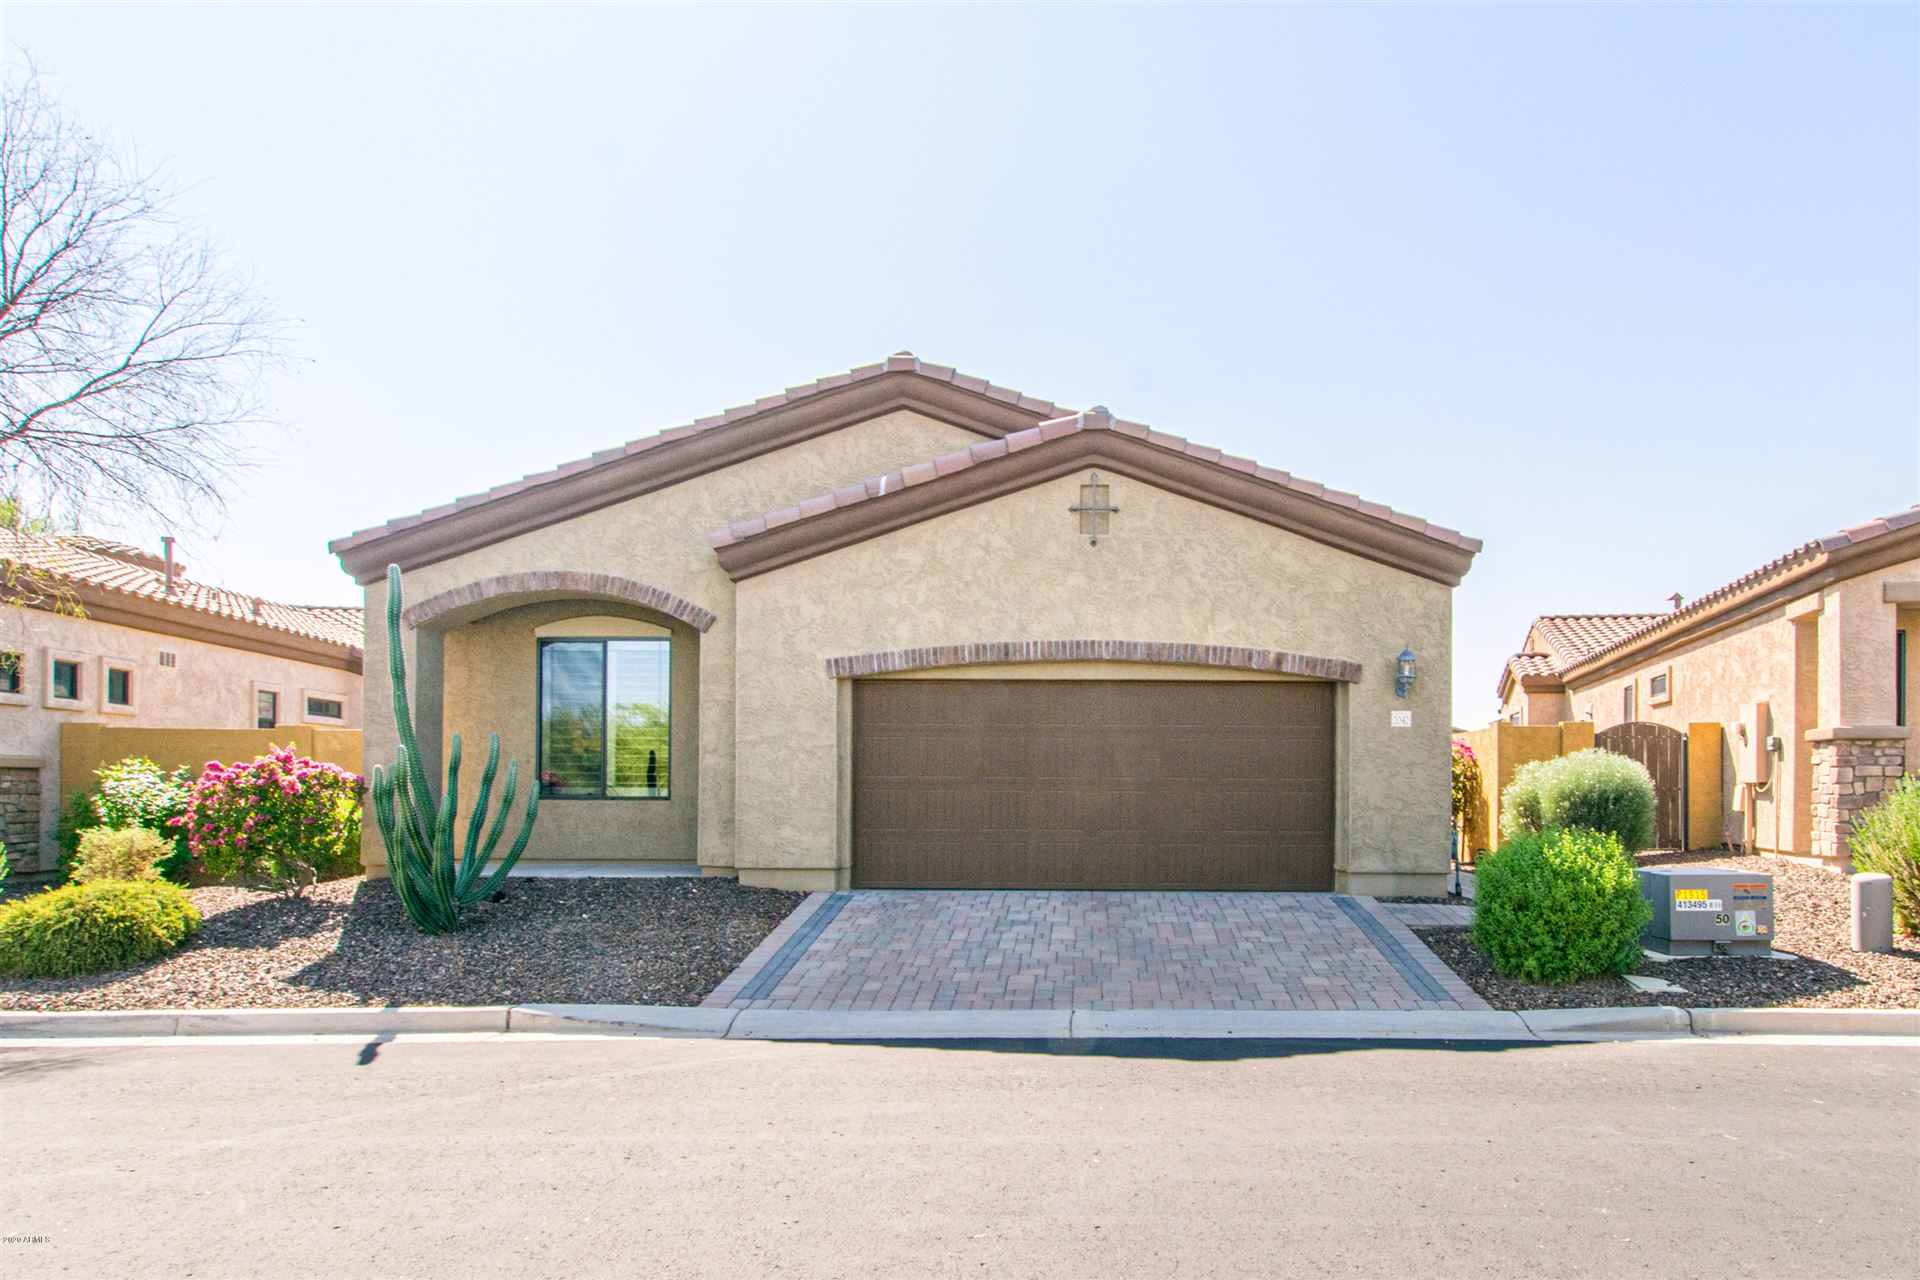 2042 N 89TH Street, Mesa, AZ 85207 - MLS#: 6137685